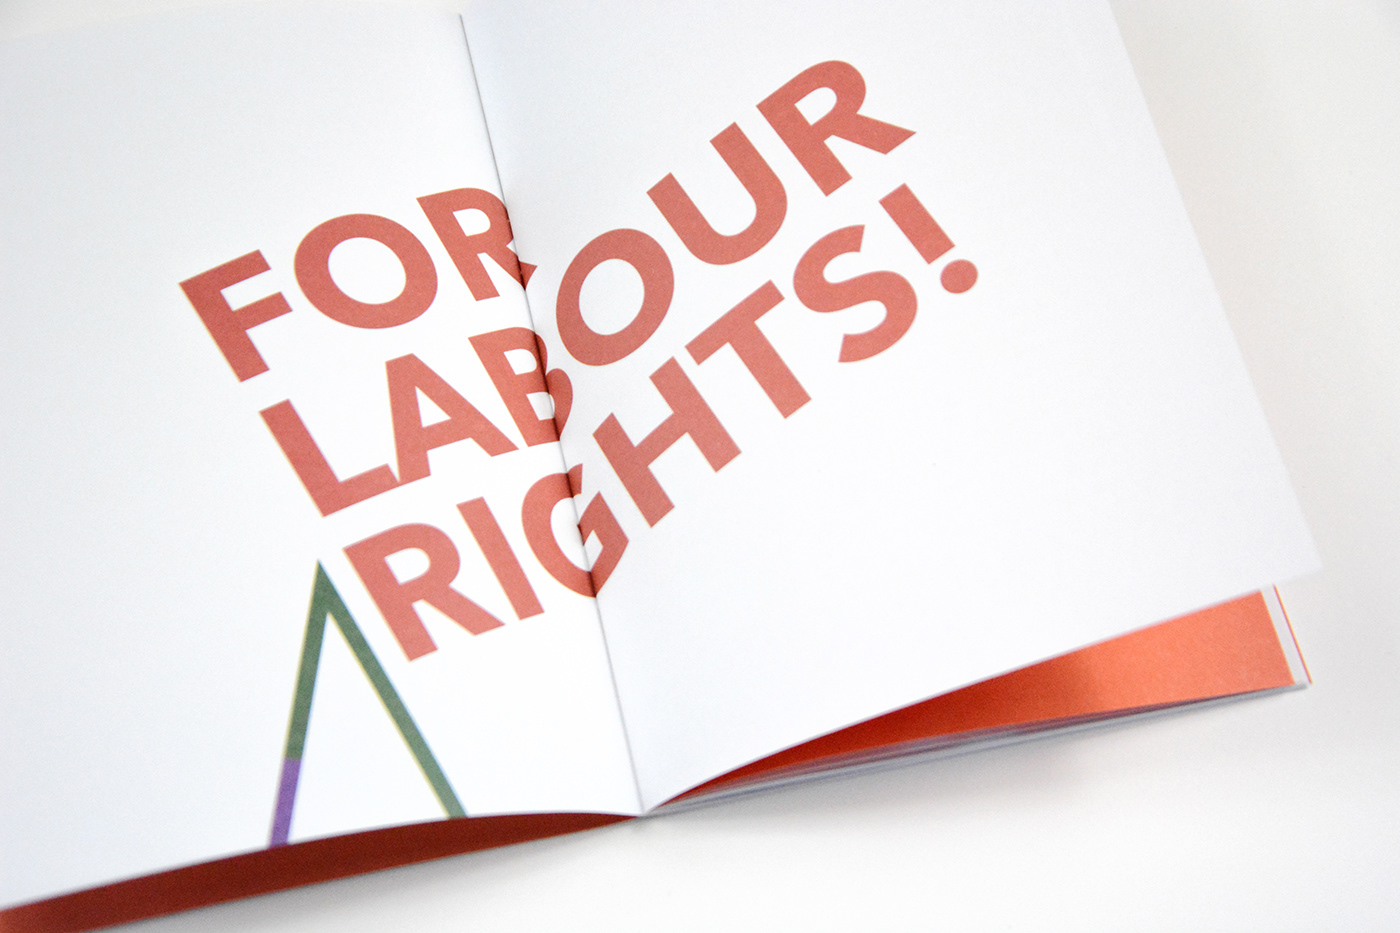 for labour rights trans national solidarity perspectives of organizing